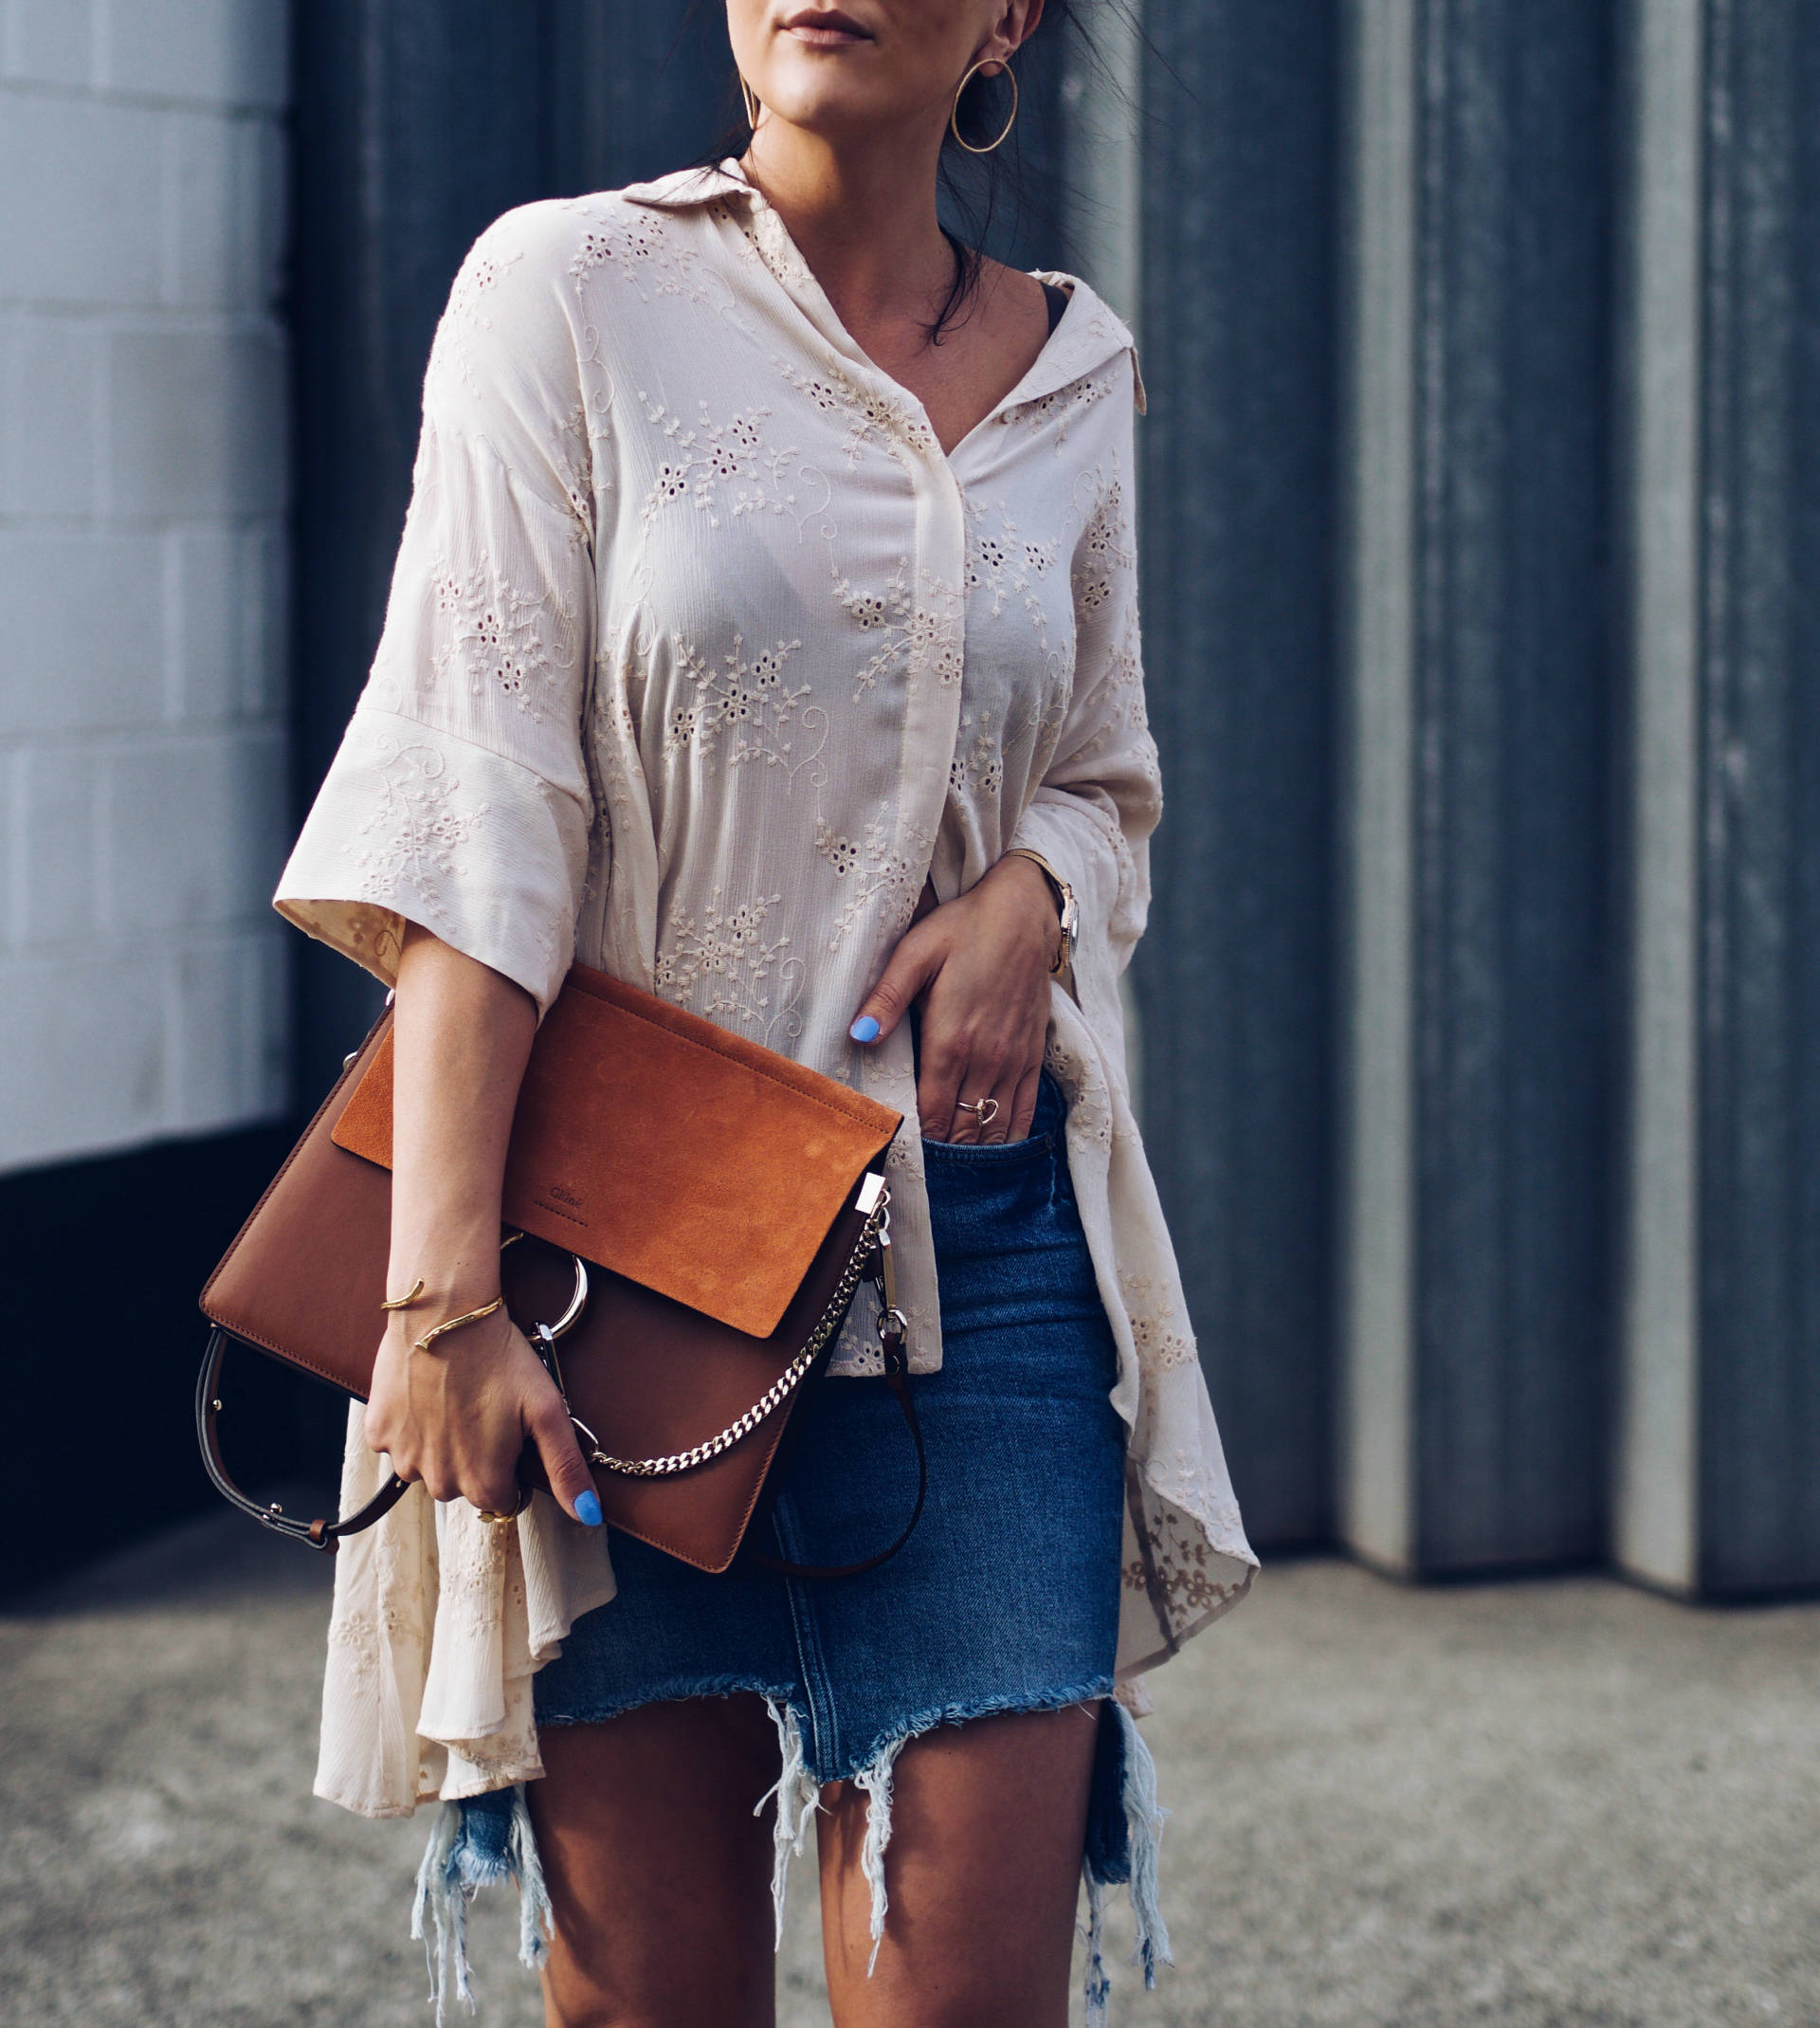 CHLOE-FAYE-TOBACCO-STYLED-BY-UK-FASHION-BLOGGER-LAFOTKA-STREET-STYLE